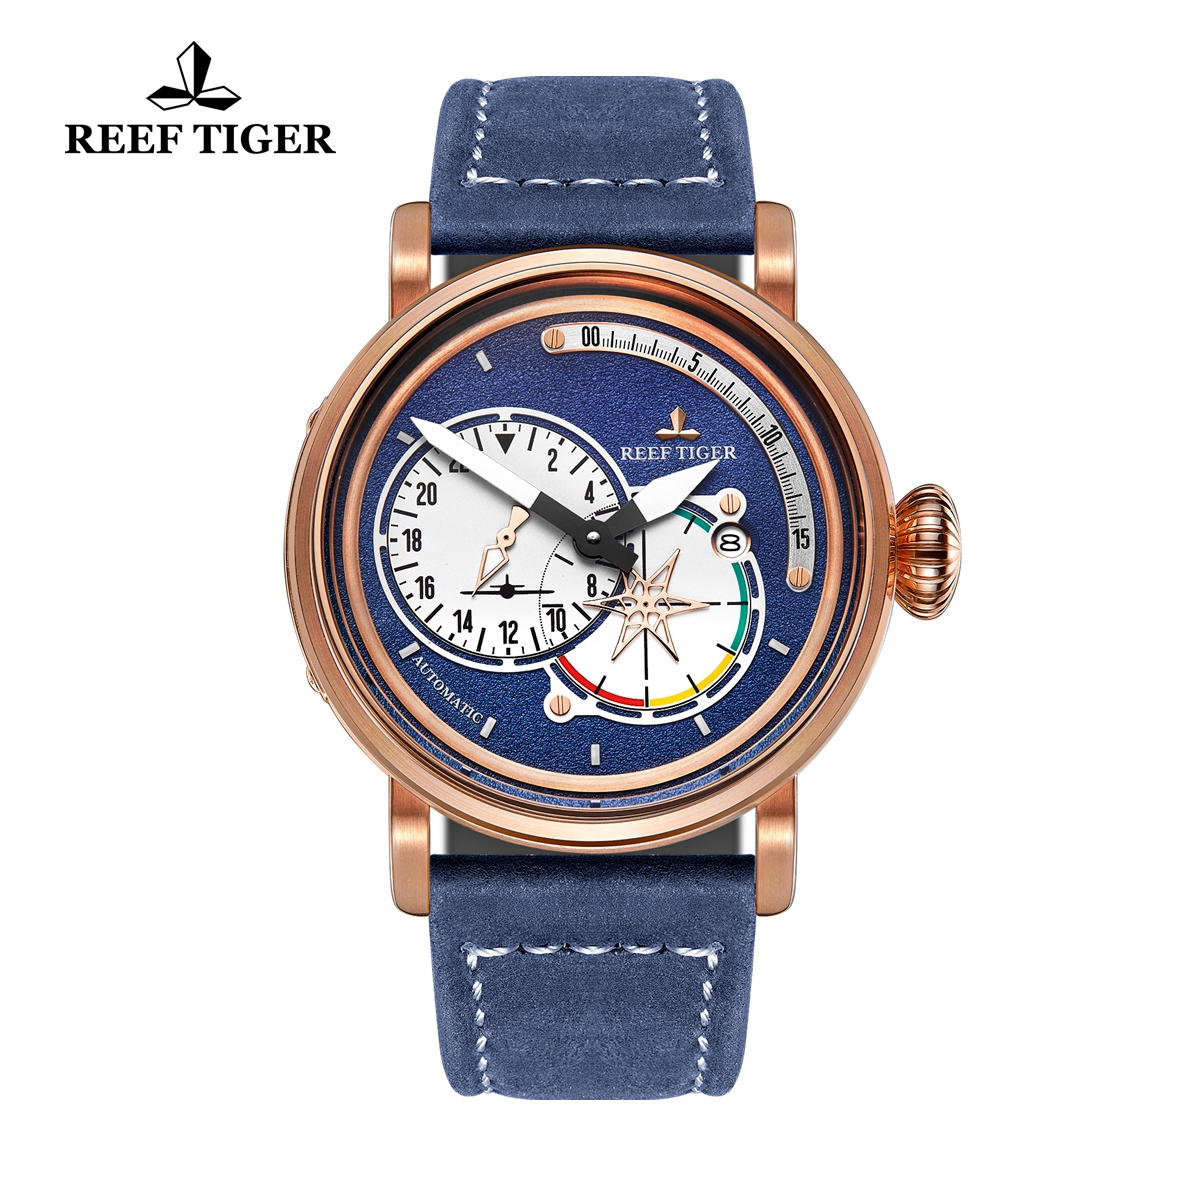 Reef Tiger Pilot Mens Watches Rose Gold Case Blue Dial Leather Strap Watches RGA3019-PLL